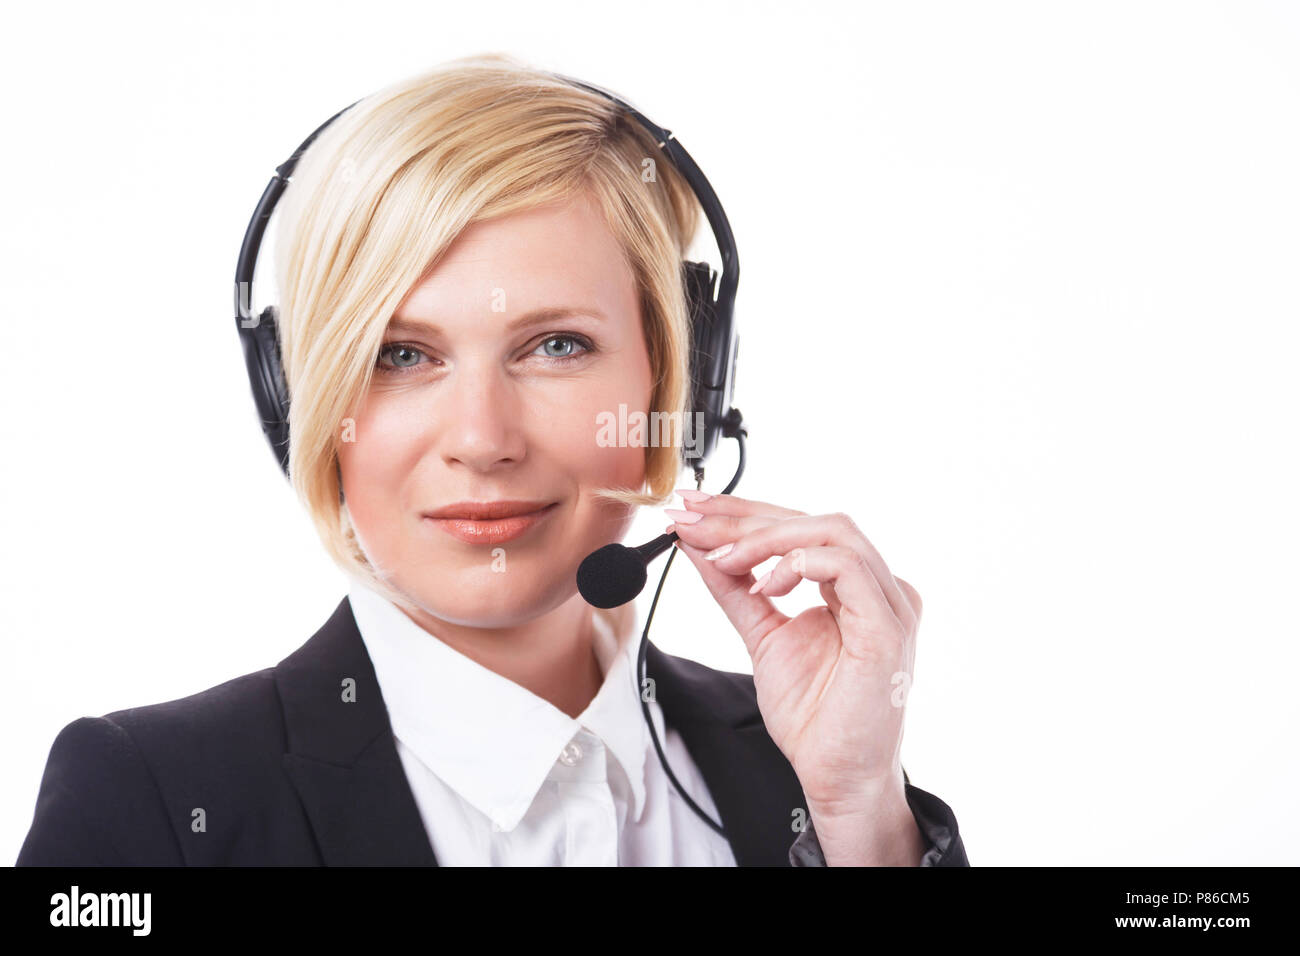 Beautiful smiling call center operator, blonde woman dressed in black jacket before white background with copyspace - Stock Image